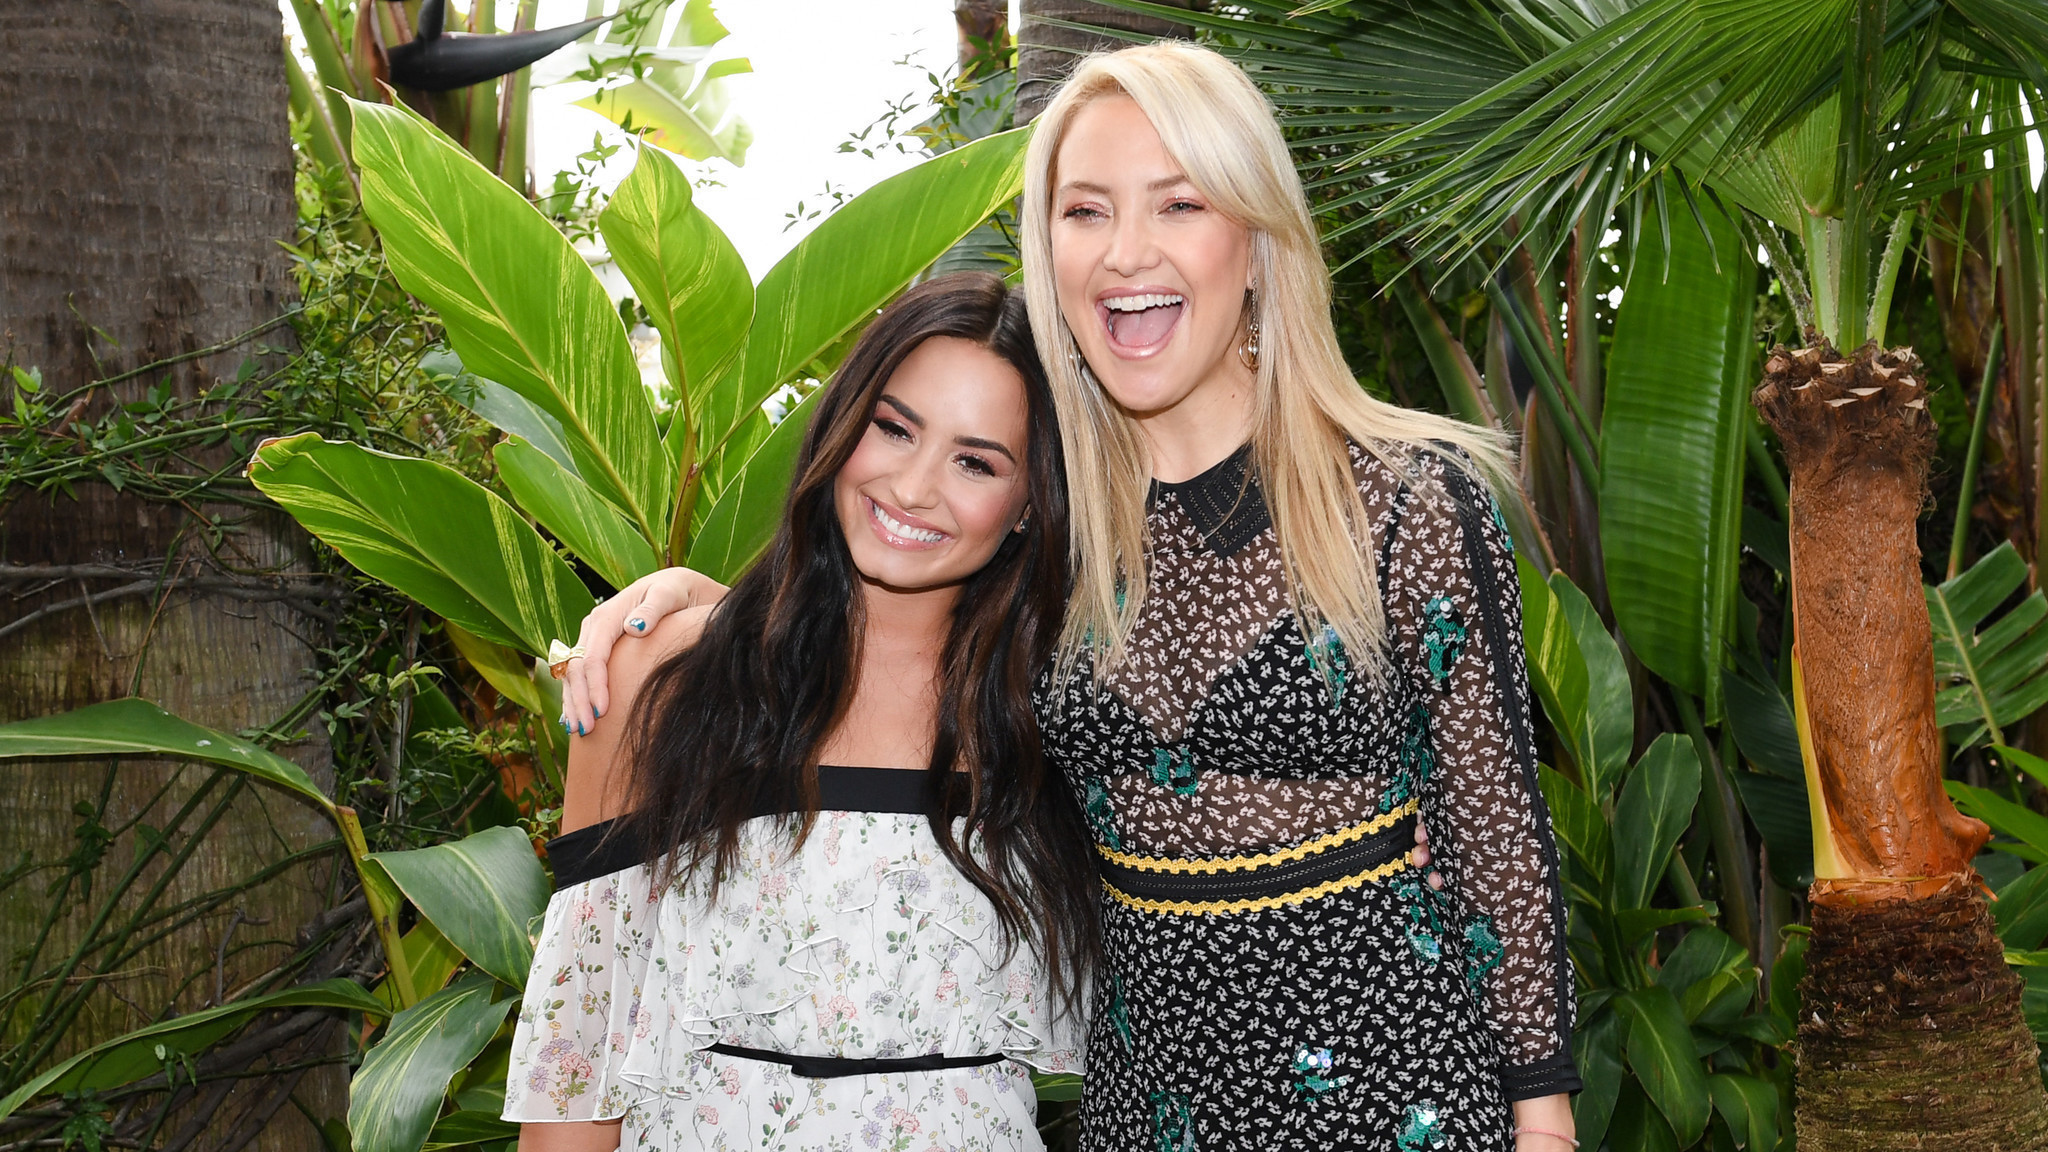 Kate Hudson and Demi Lovato Attend A Fabletics Event Due to Their Collaboration on Collections